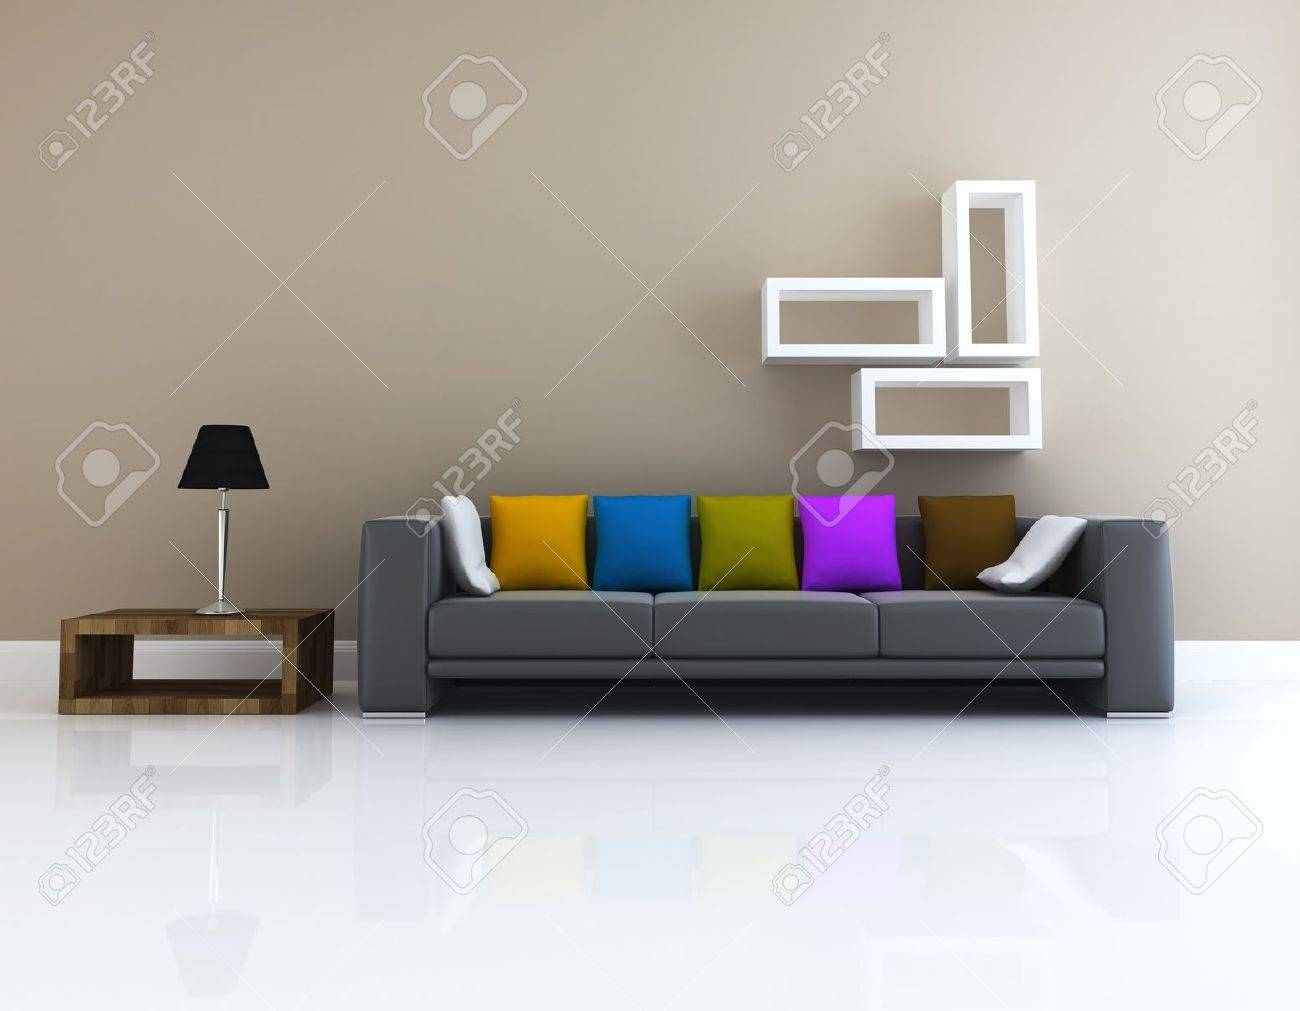 Interior Of Living Room Design 3D Rendering Stock Photo, Picture ...